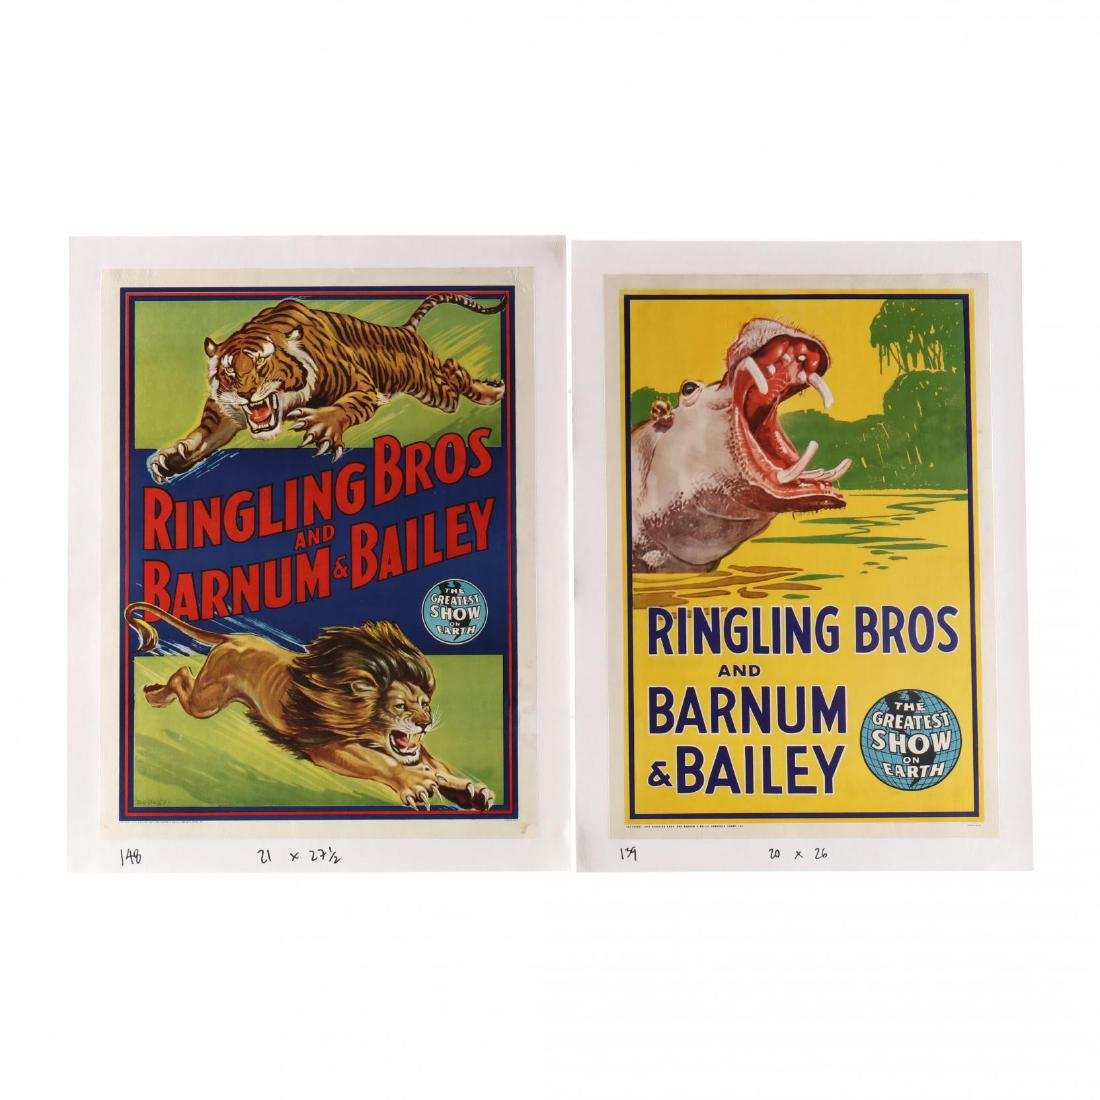 Two Ringling Bros and Barnum & Bailey Vintage Circus